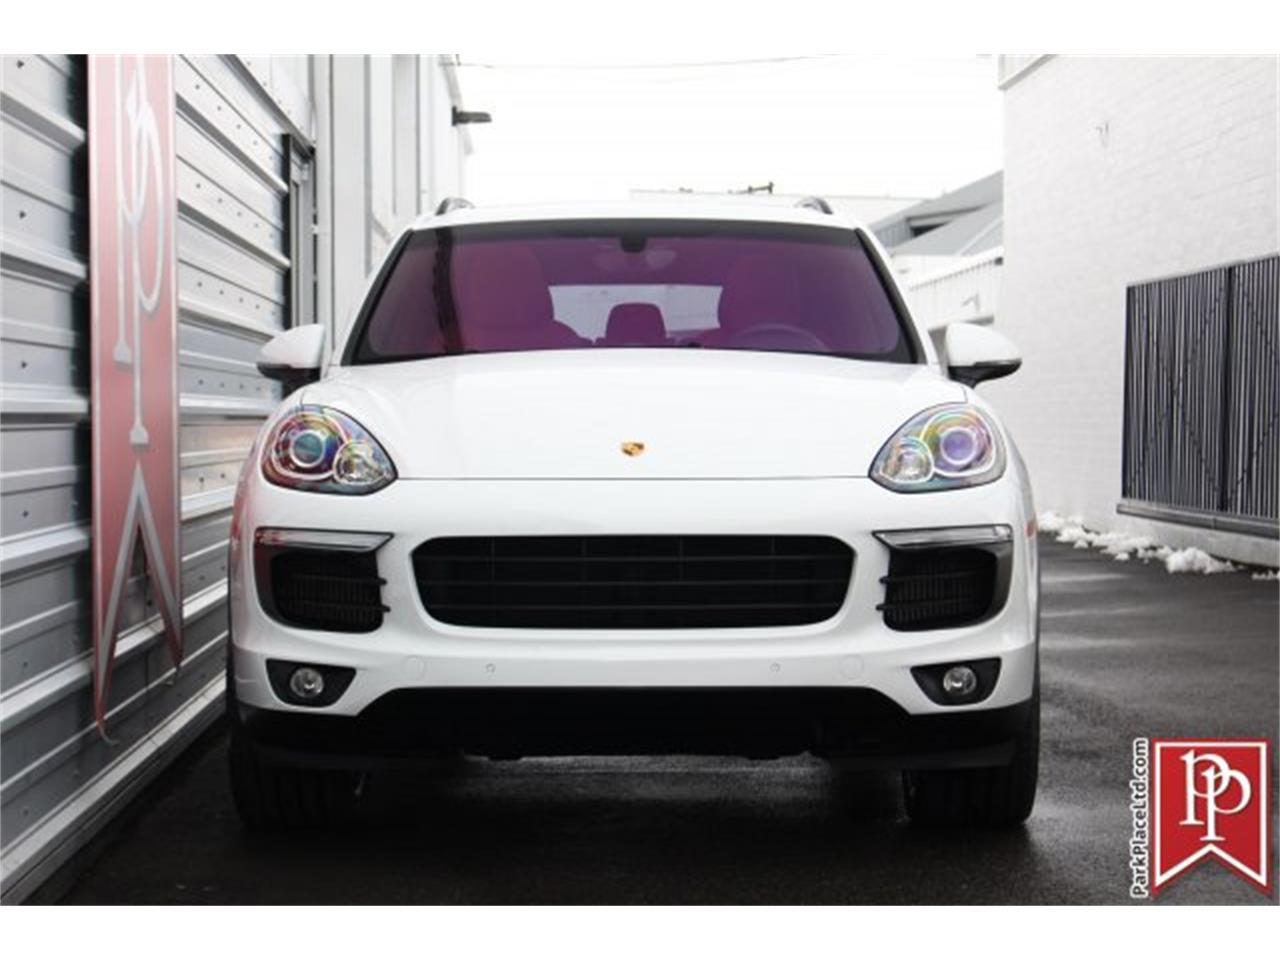 2015 Porsche Cayenne for sale in Bellevue, WA – photo 3